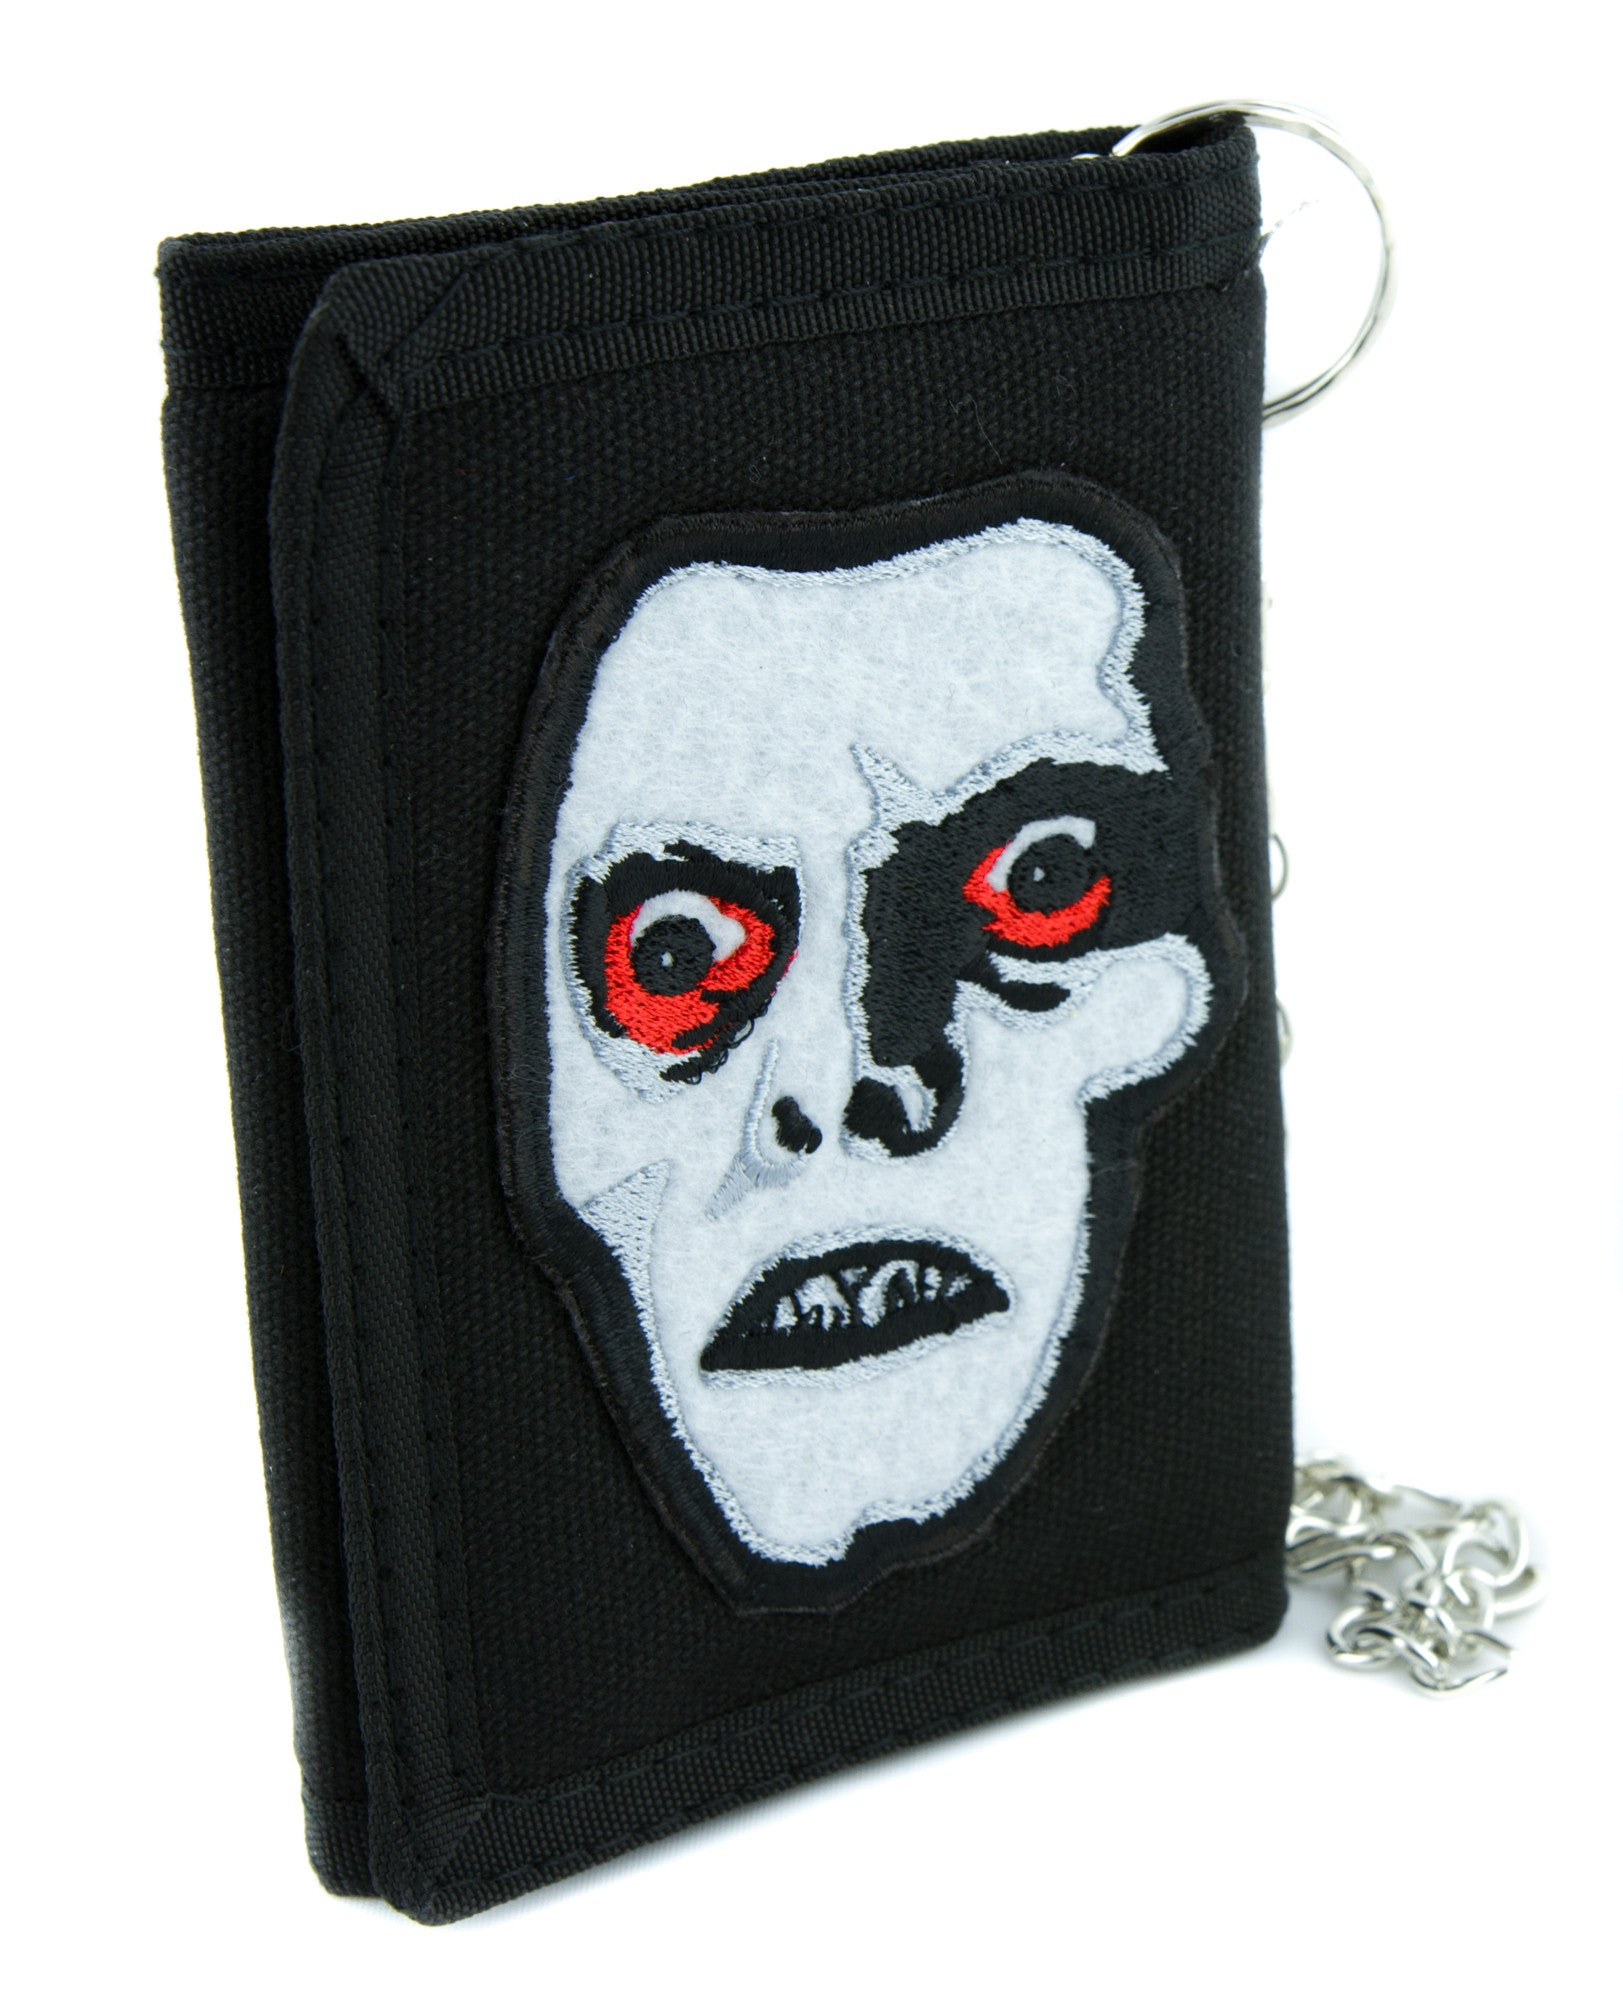 Captain Howdy Pazuzu The Exorcist Tri-fold Wallet with Chain Cult Clothing Horror Movie